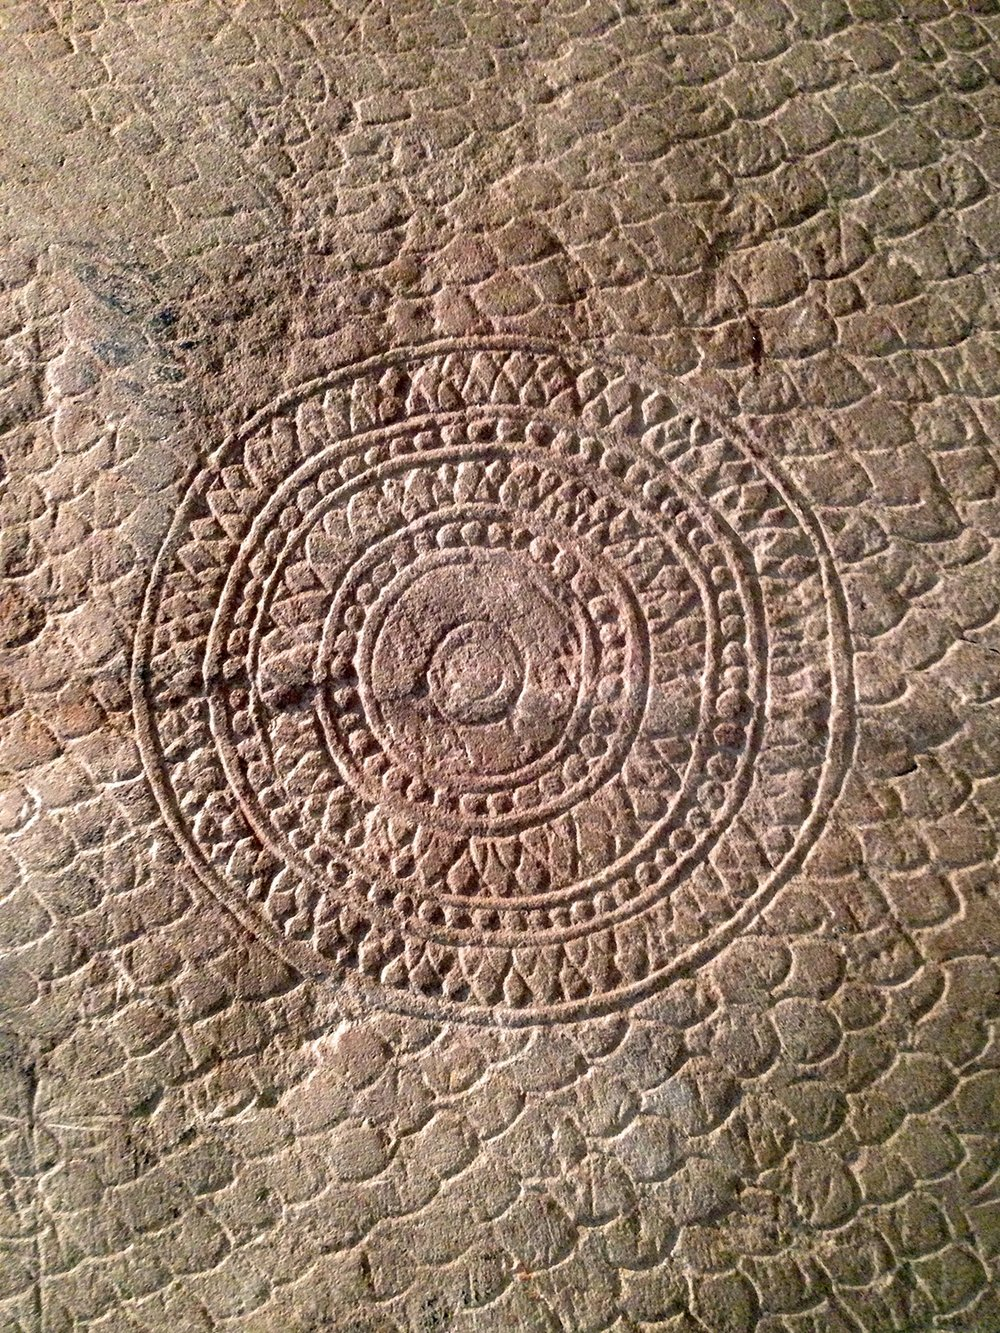 Concentric circles on back of Naga sculpture.